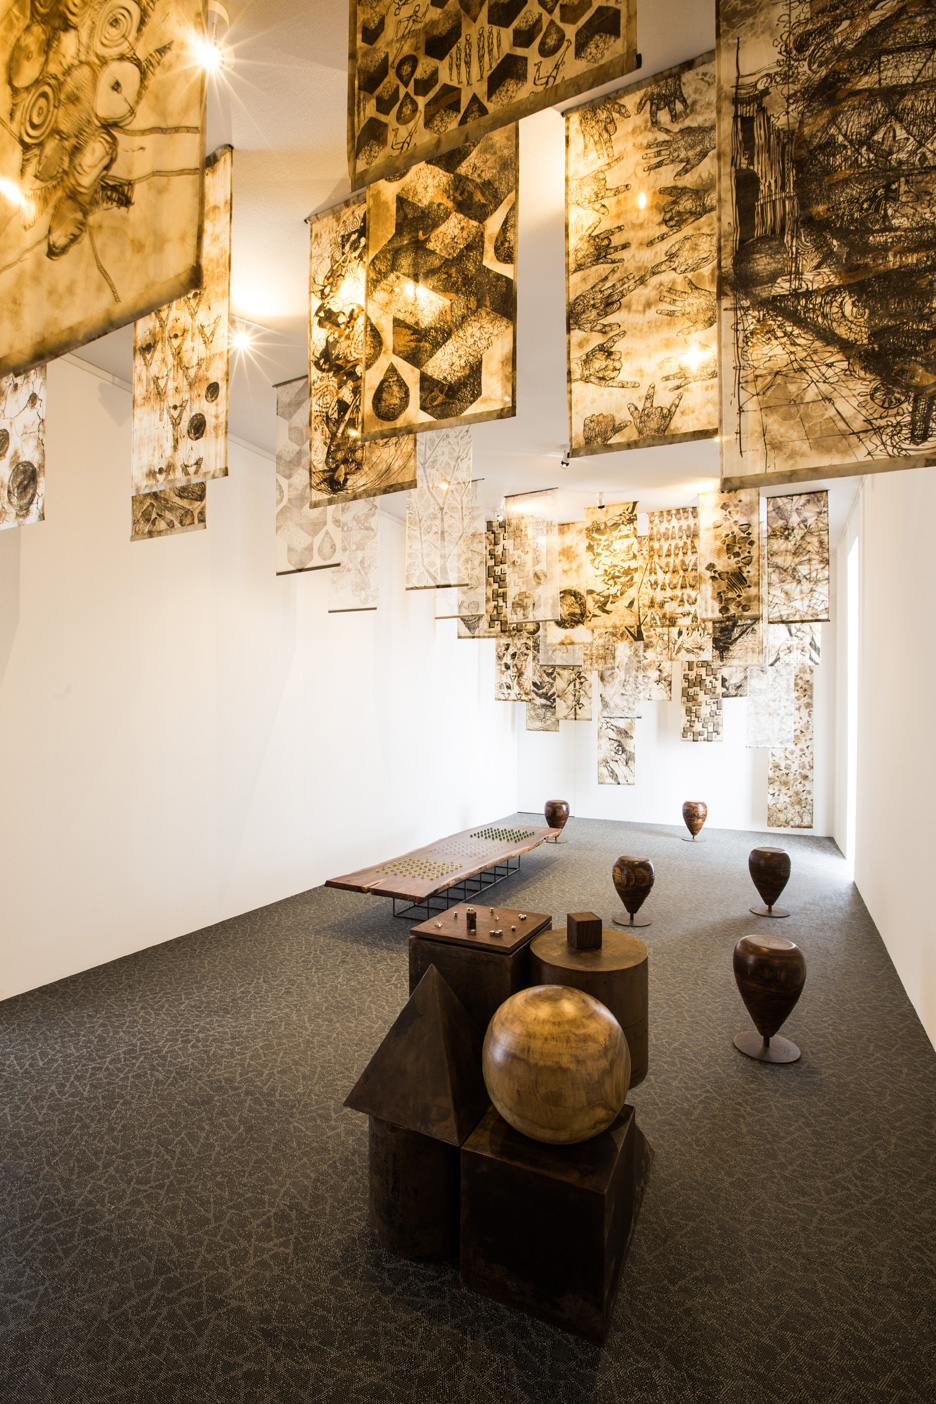 Pakistan Abwab pavilion at Dubai Design Week 2015